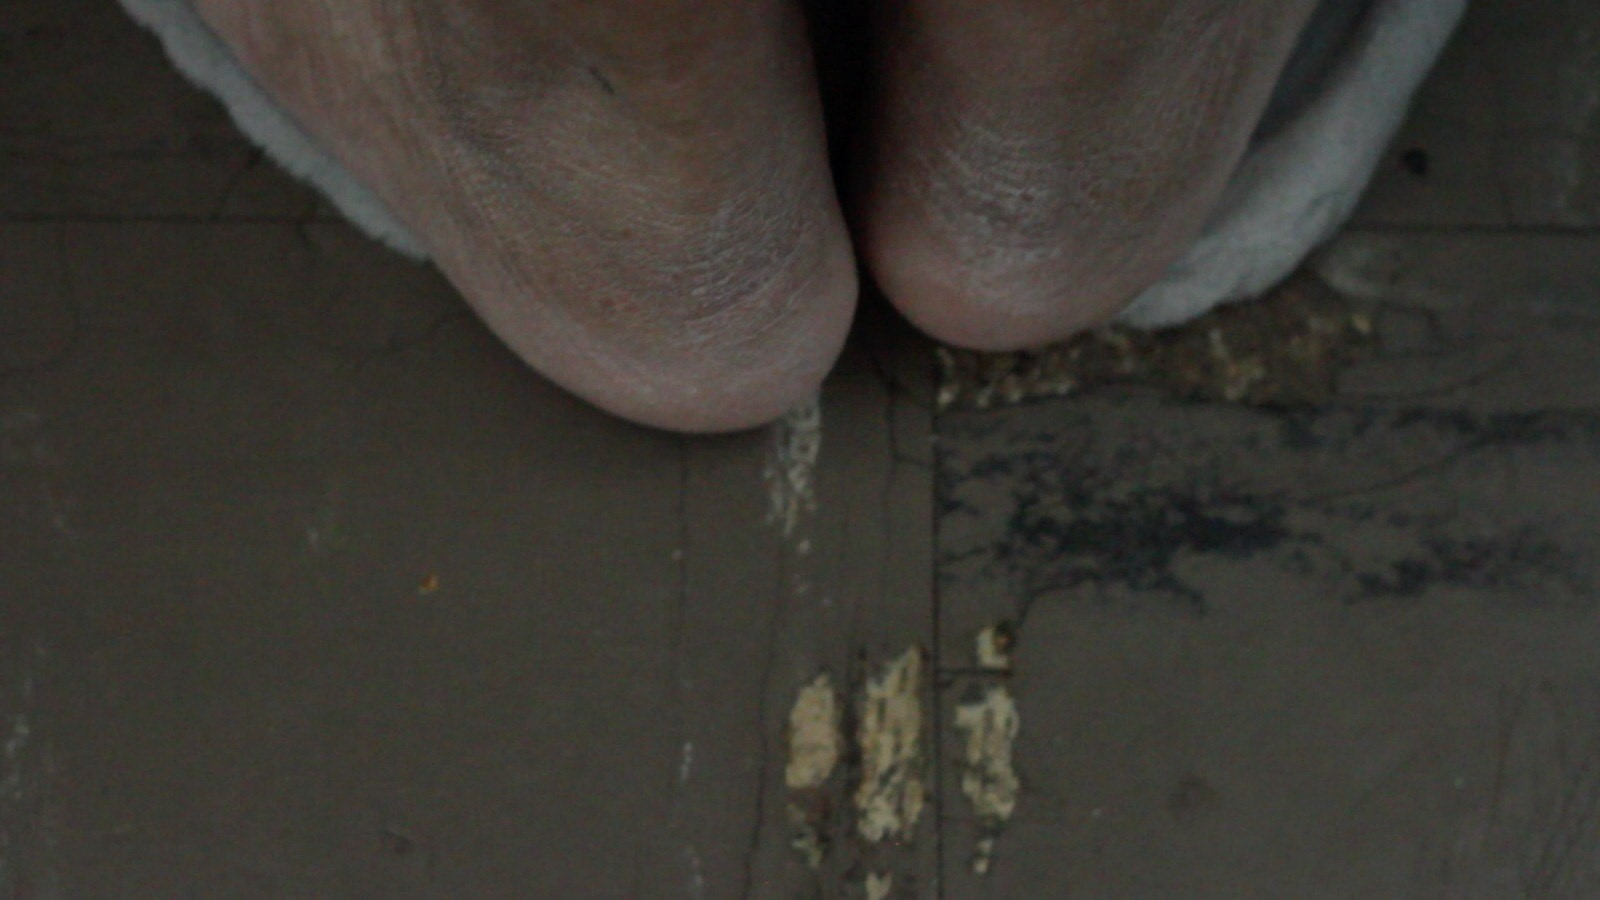 A still from Akinola Davies' film Untitled. The heels of two feet on concrete floor.